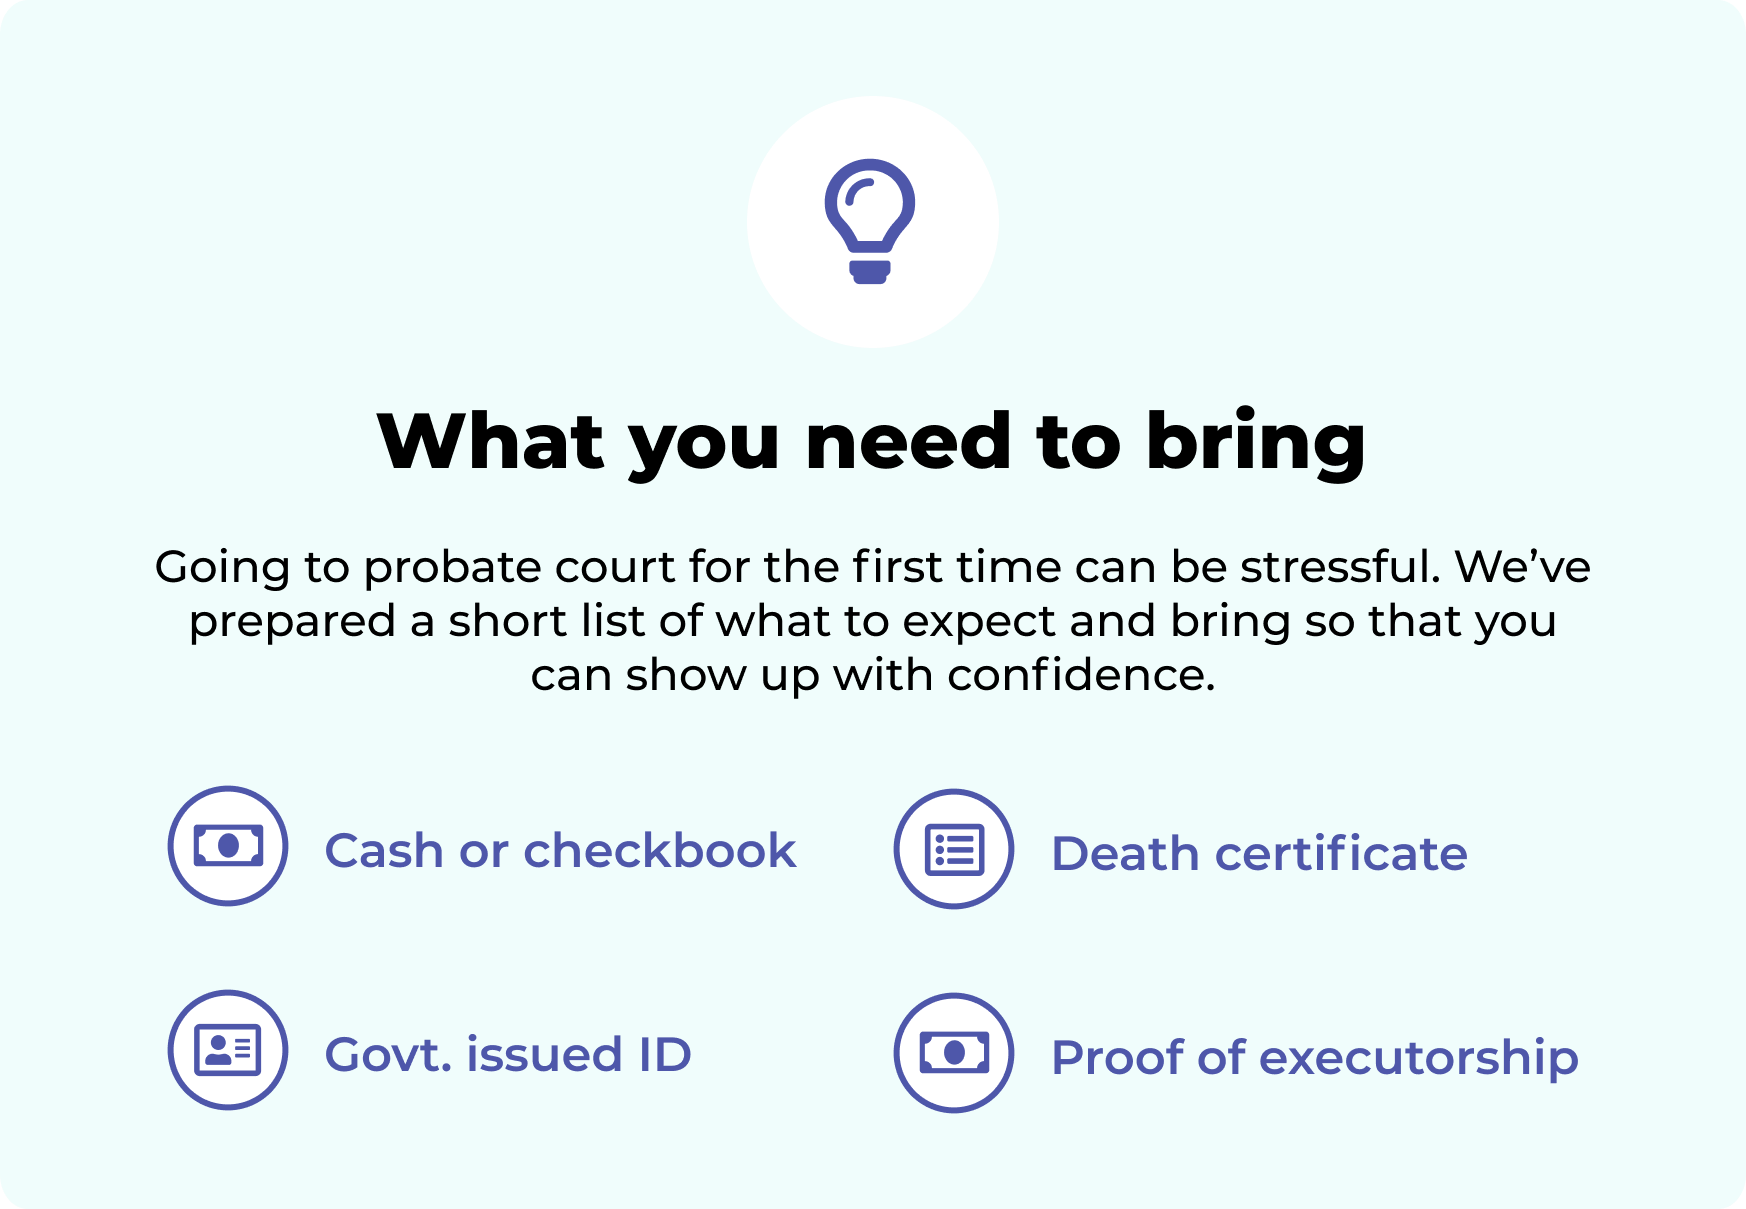 Infographic reminder to bring cash, government issued ID, death certificate and relevant last will & testament documents when visiting probate court.